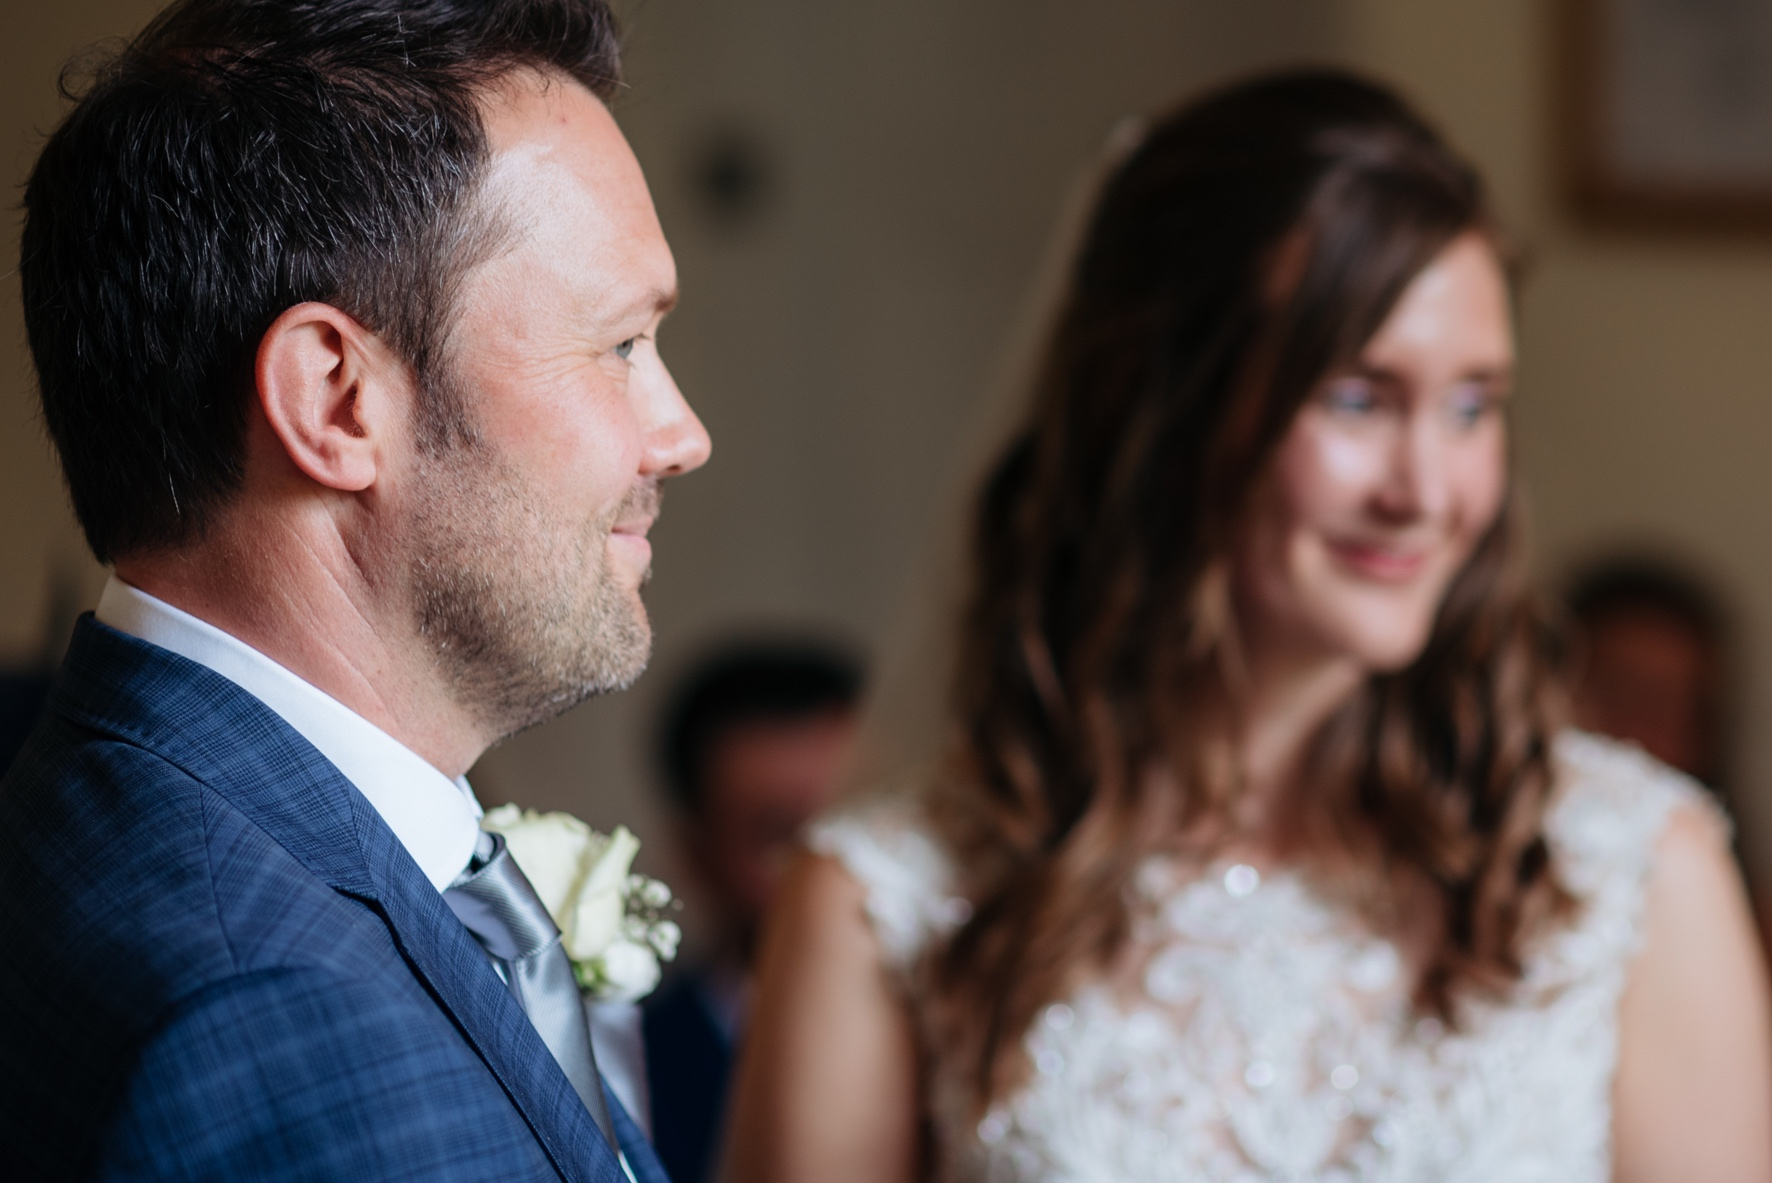 - Throughout the day I work in an unobtrusive way, I'll mingle amongst the guests and often capture events and emotions from a distance so I truly capture candid moments. I carefully use angles and light to bring a natural view of your wedding day.